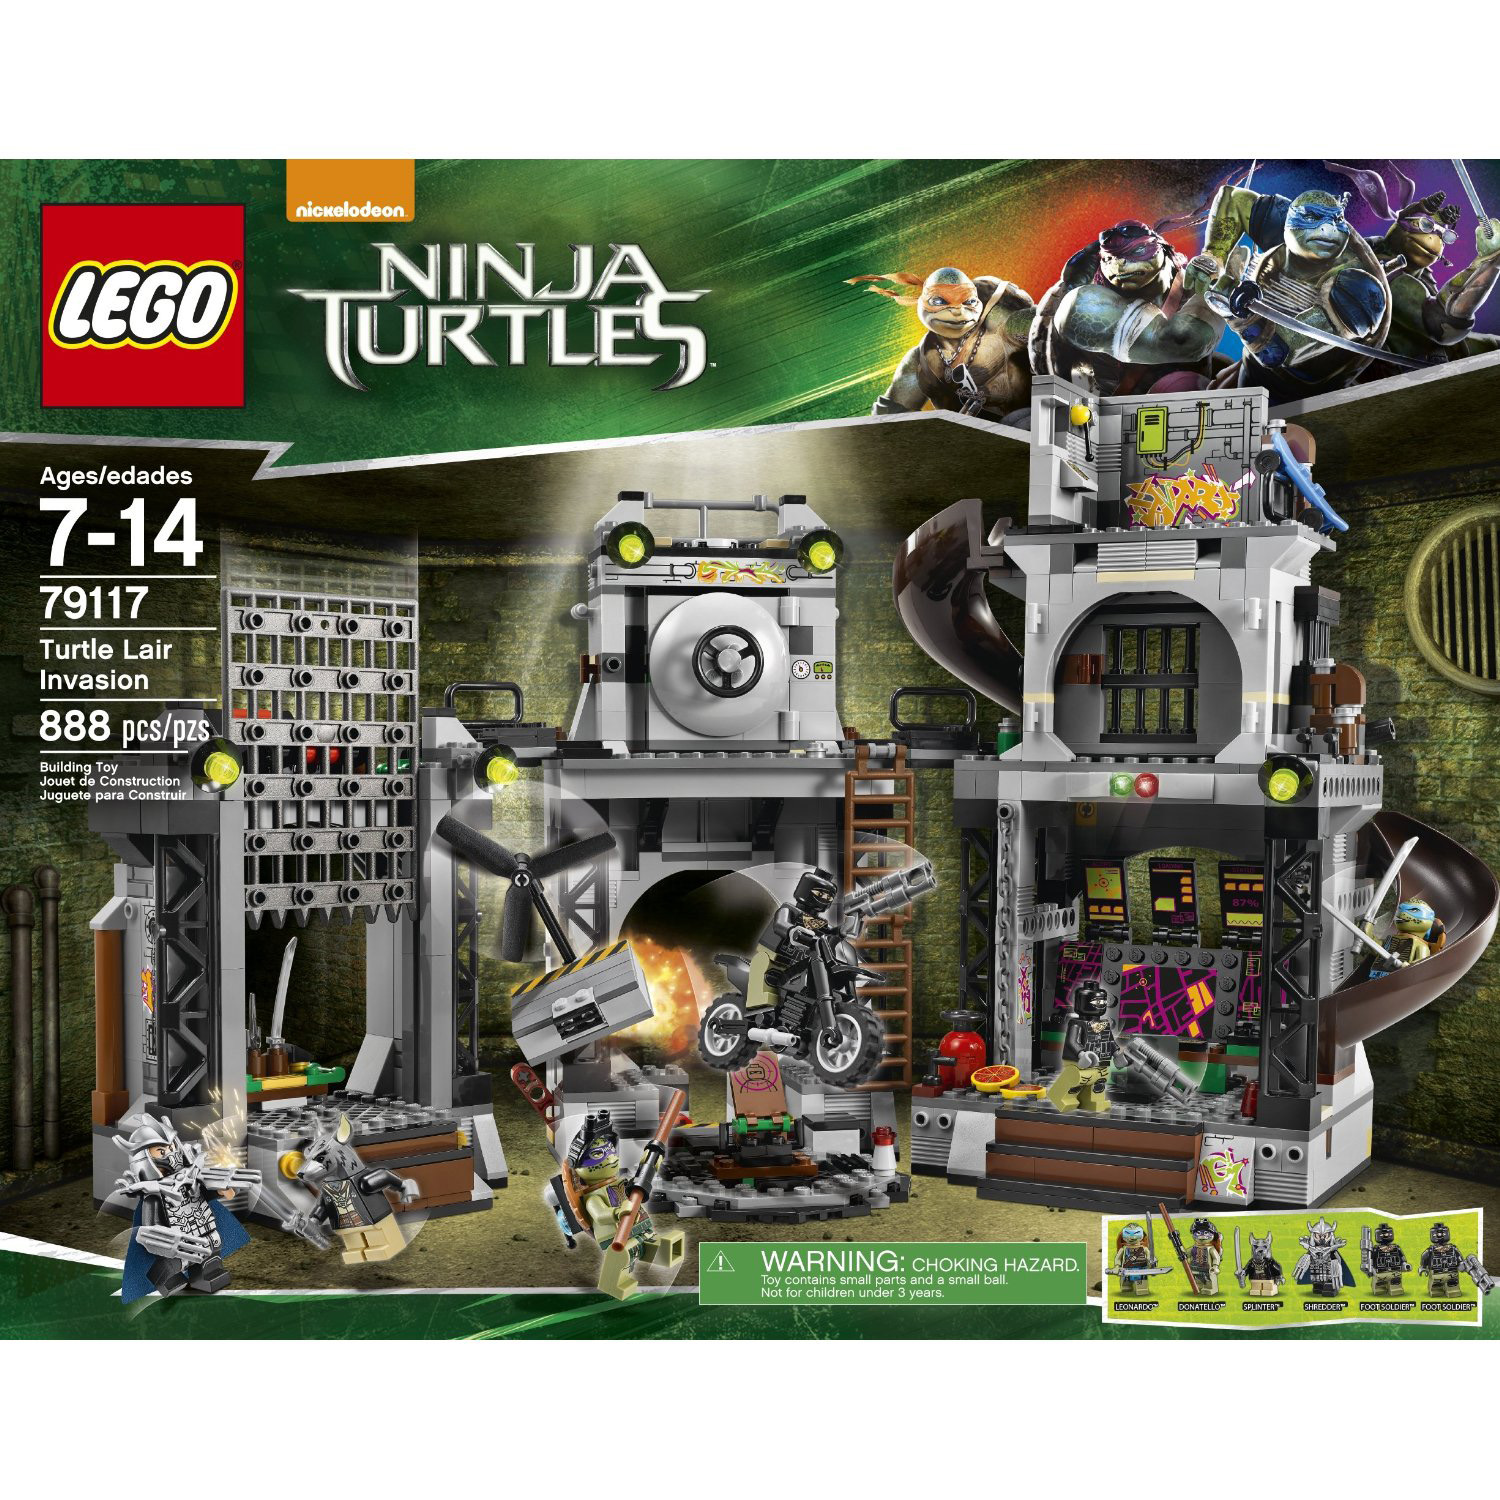 LEGO x Teenage Mutant Ninja Turtles Movie Set 18